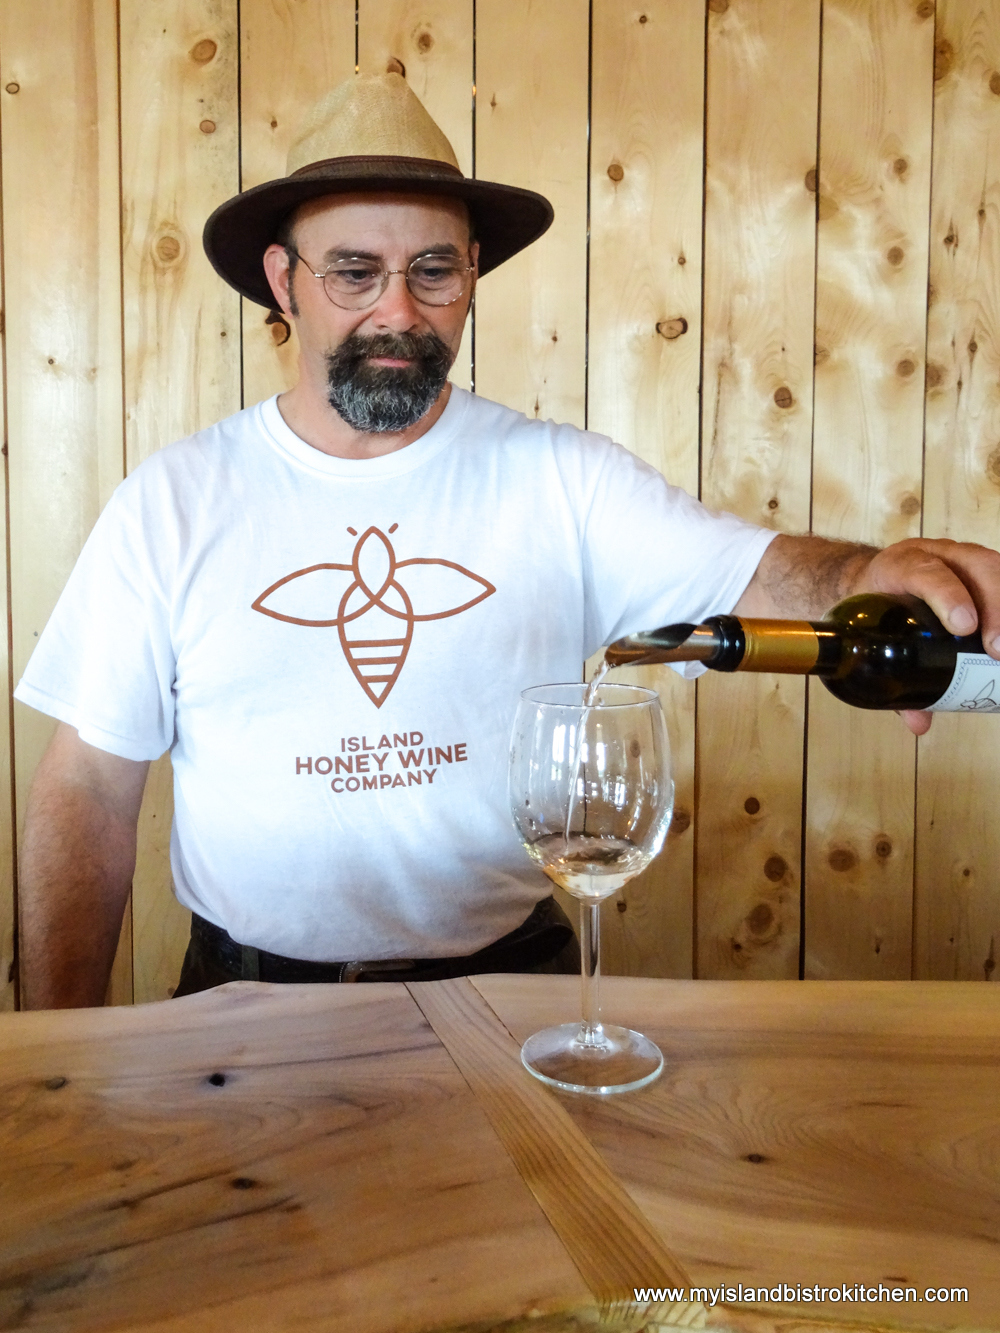 Charles Lipnicki pours a sample of one of his honey meads made at Island Honey Wine Company in Wheatley River, PEI